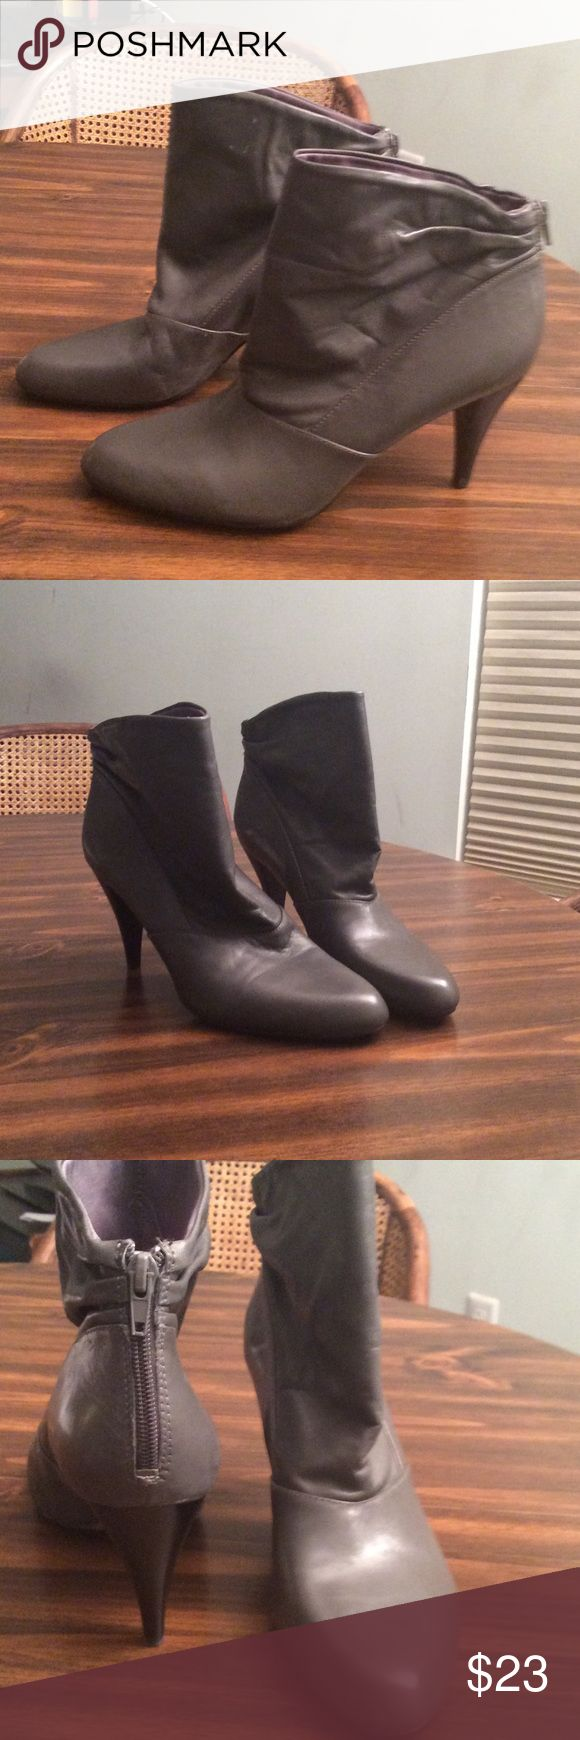 Nine West grey leather boots size 8. 1/2 Great Preowned condition. 3 inch heel, with a back zipper. Leather upper size 8. 1/2 Nine West Shoes Ankle Boots & Booties